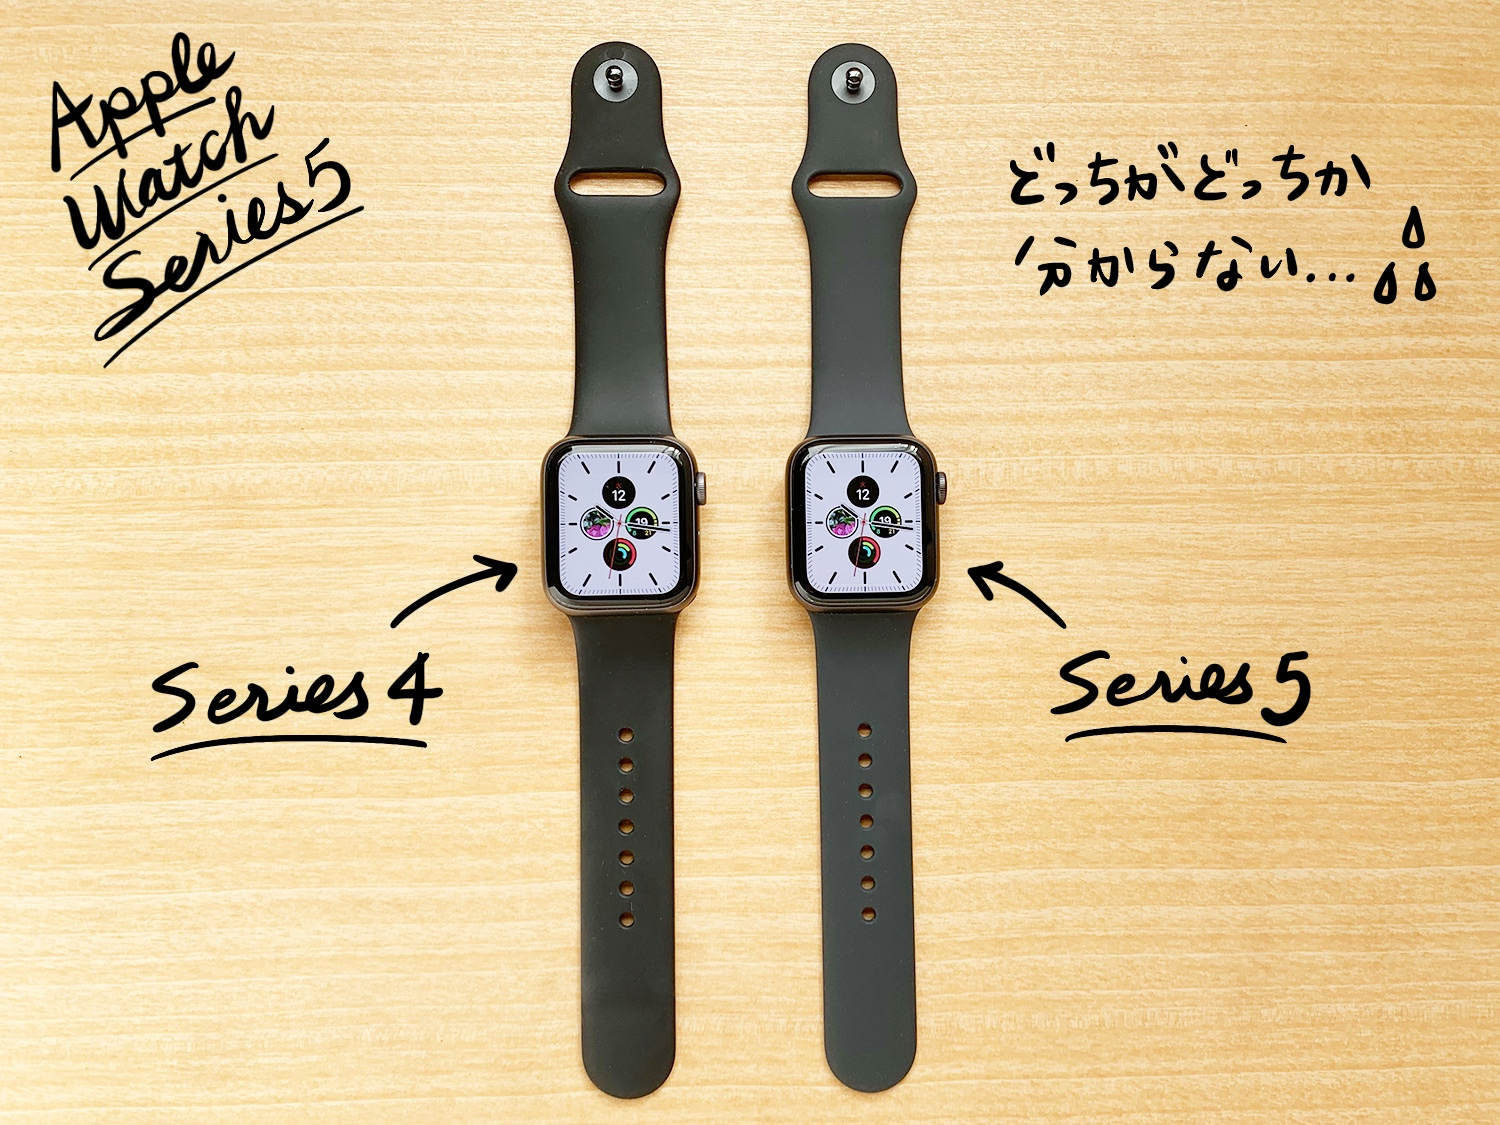 Apple Watch Series 5とSeries 4の比較画像